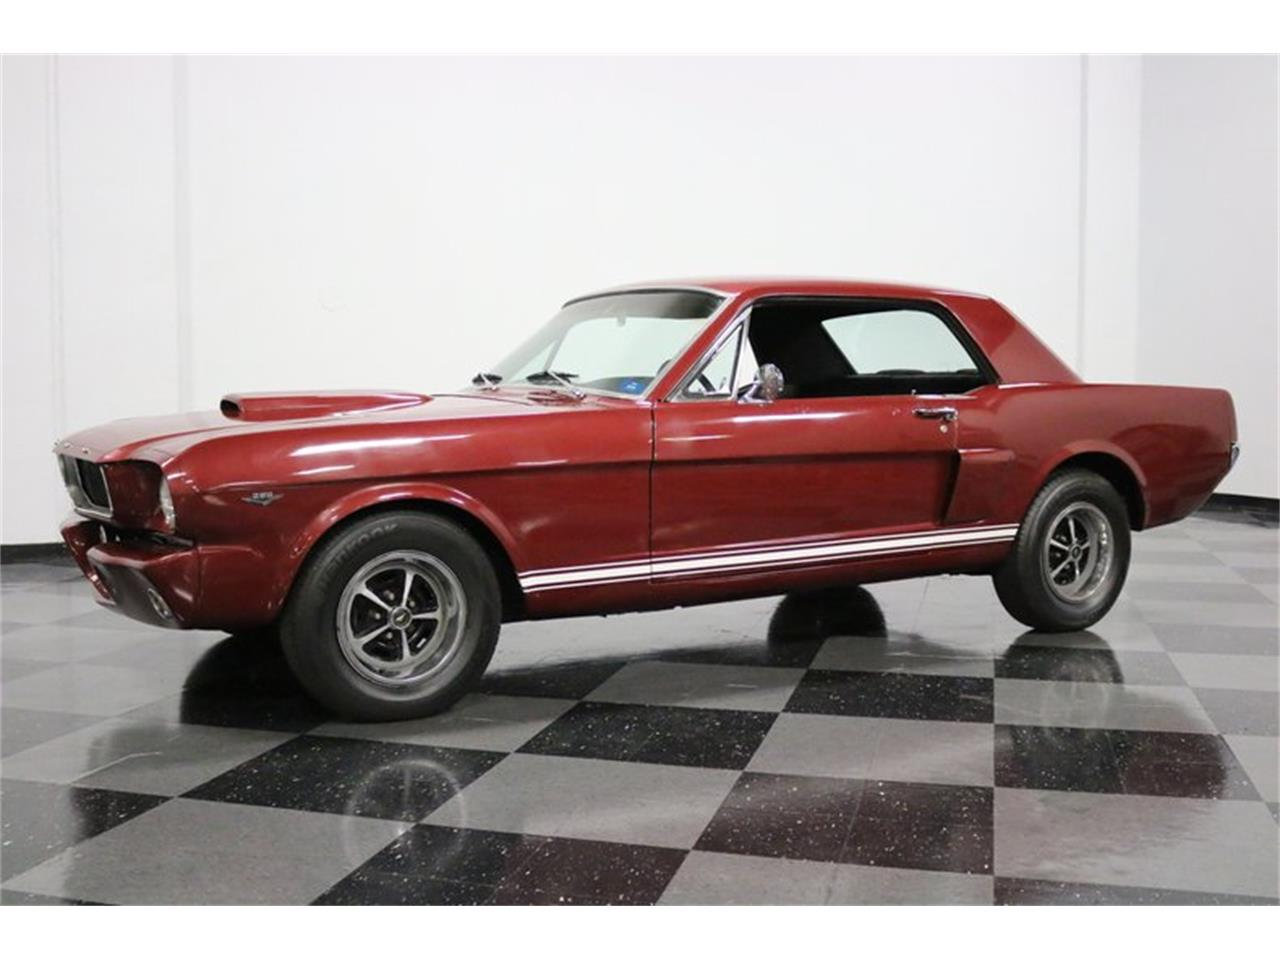 1965 Ford Mustang For Sale In Ft Worth Tx Classiccarsbay Com